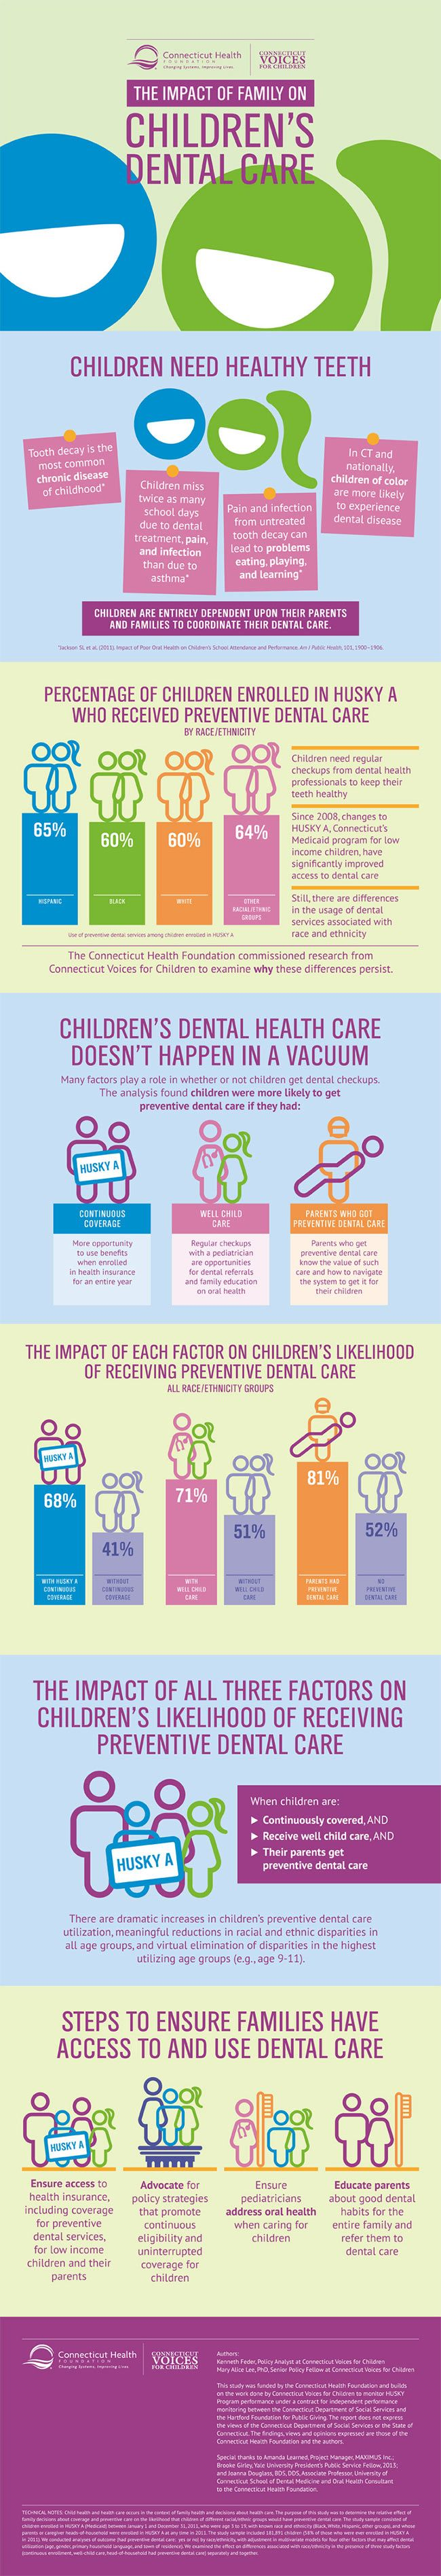 The Impact of Family on Children's Dental Care